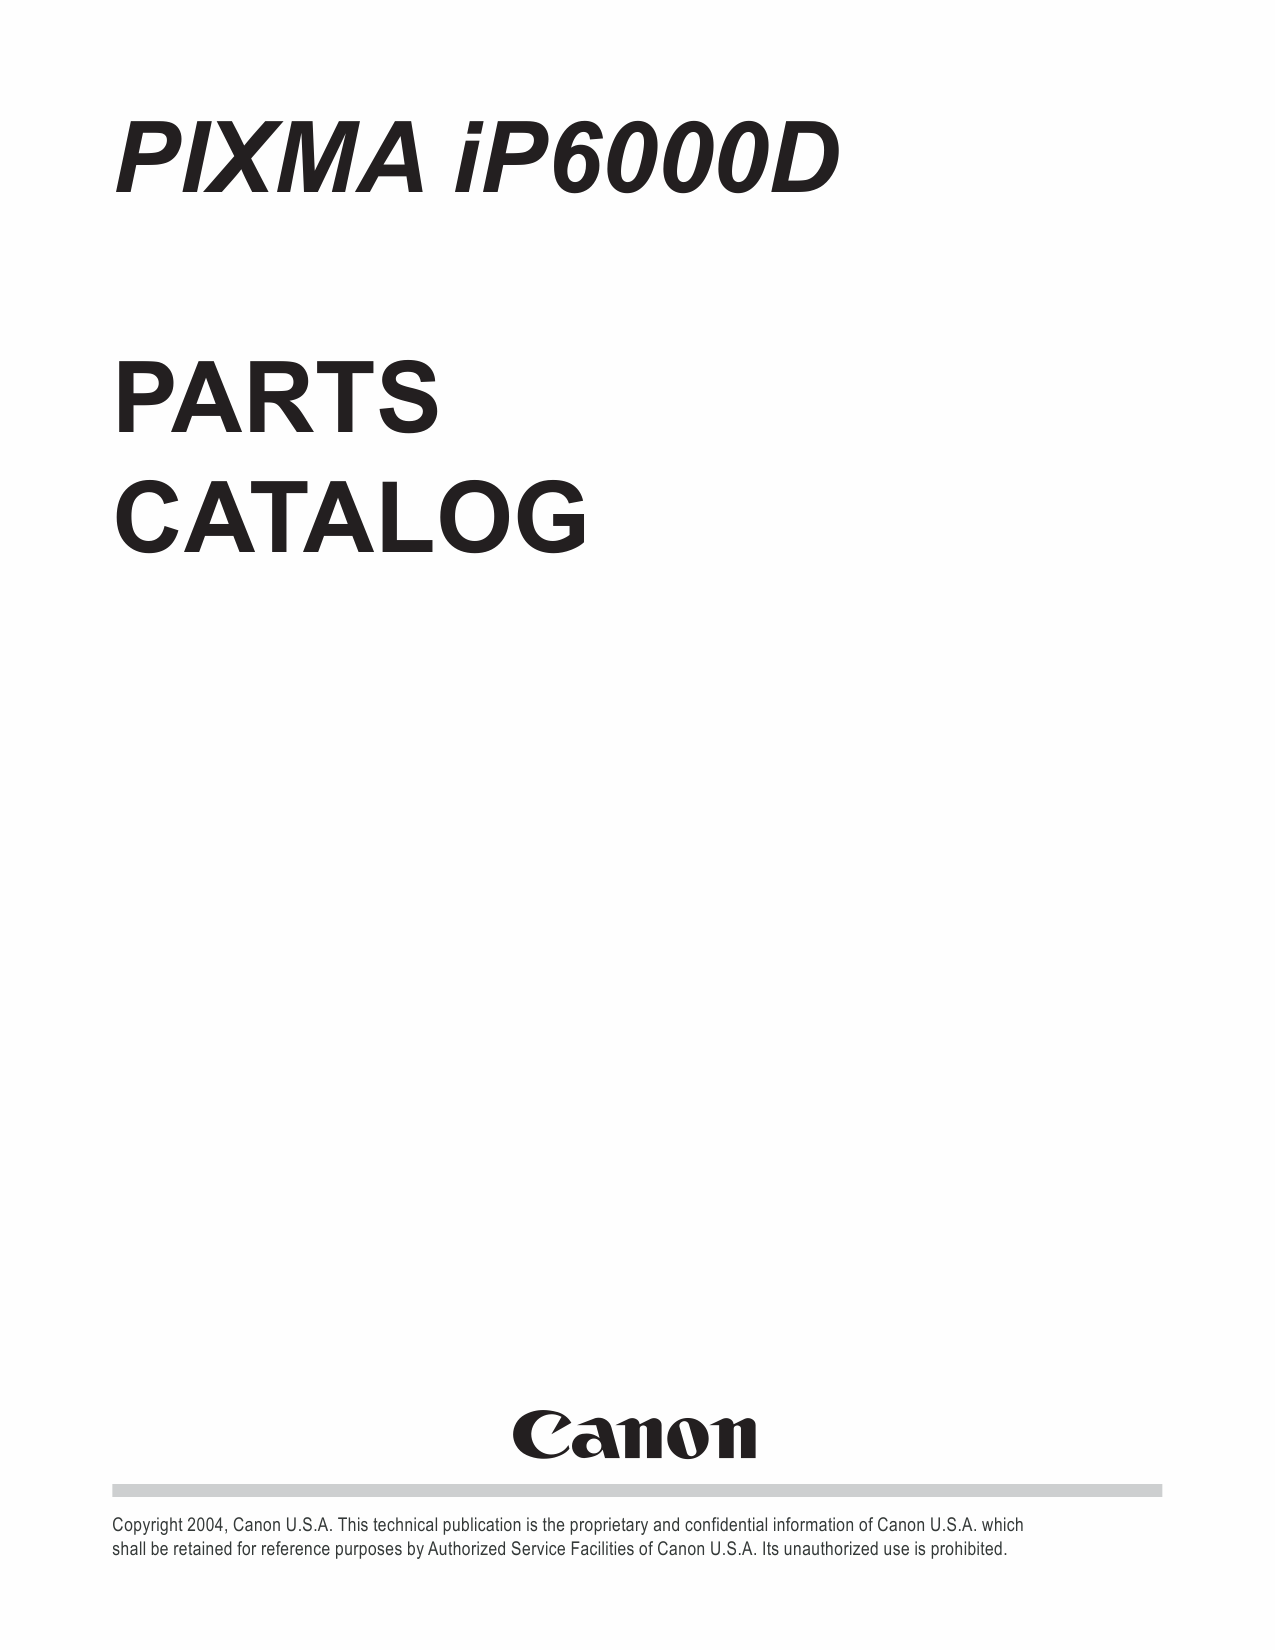 Canon PIXMA iP6000D Parts Catalog Manual